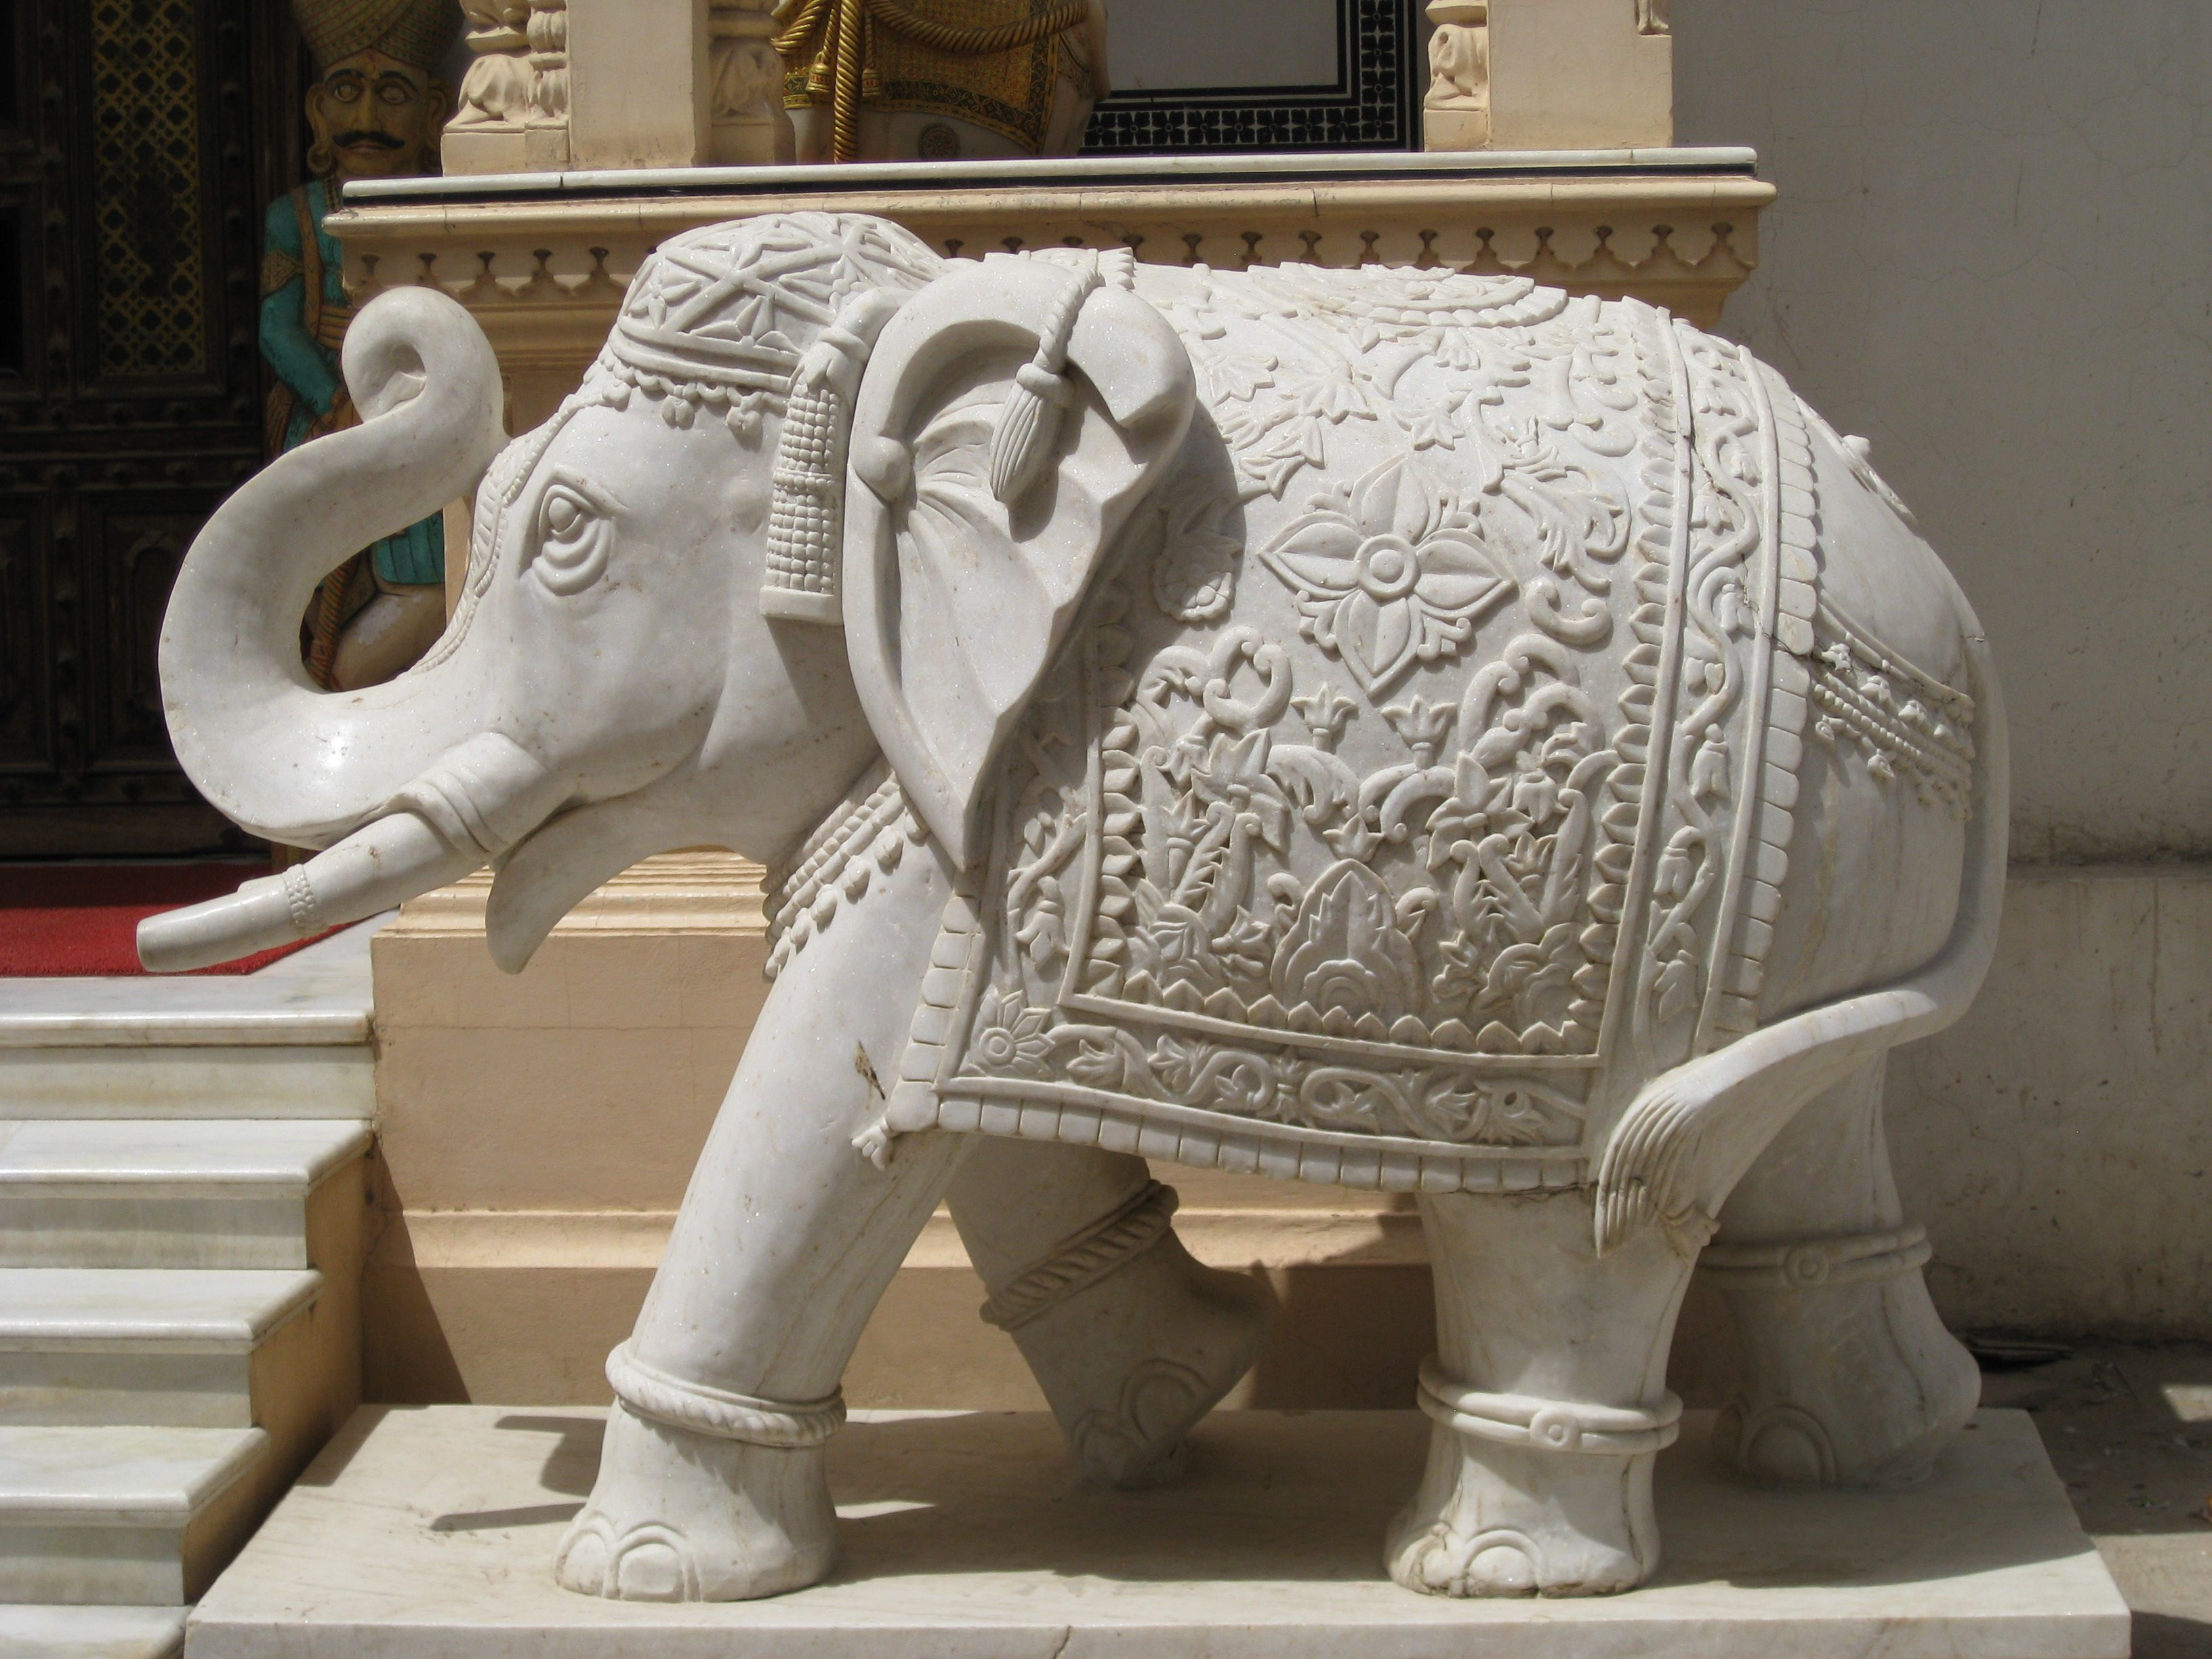 A elephant, beautifully hand carved out of white marble at a local stone mason's…